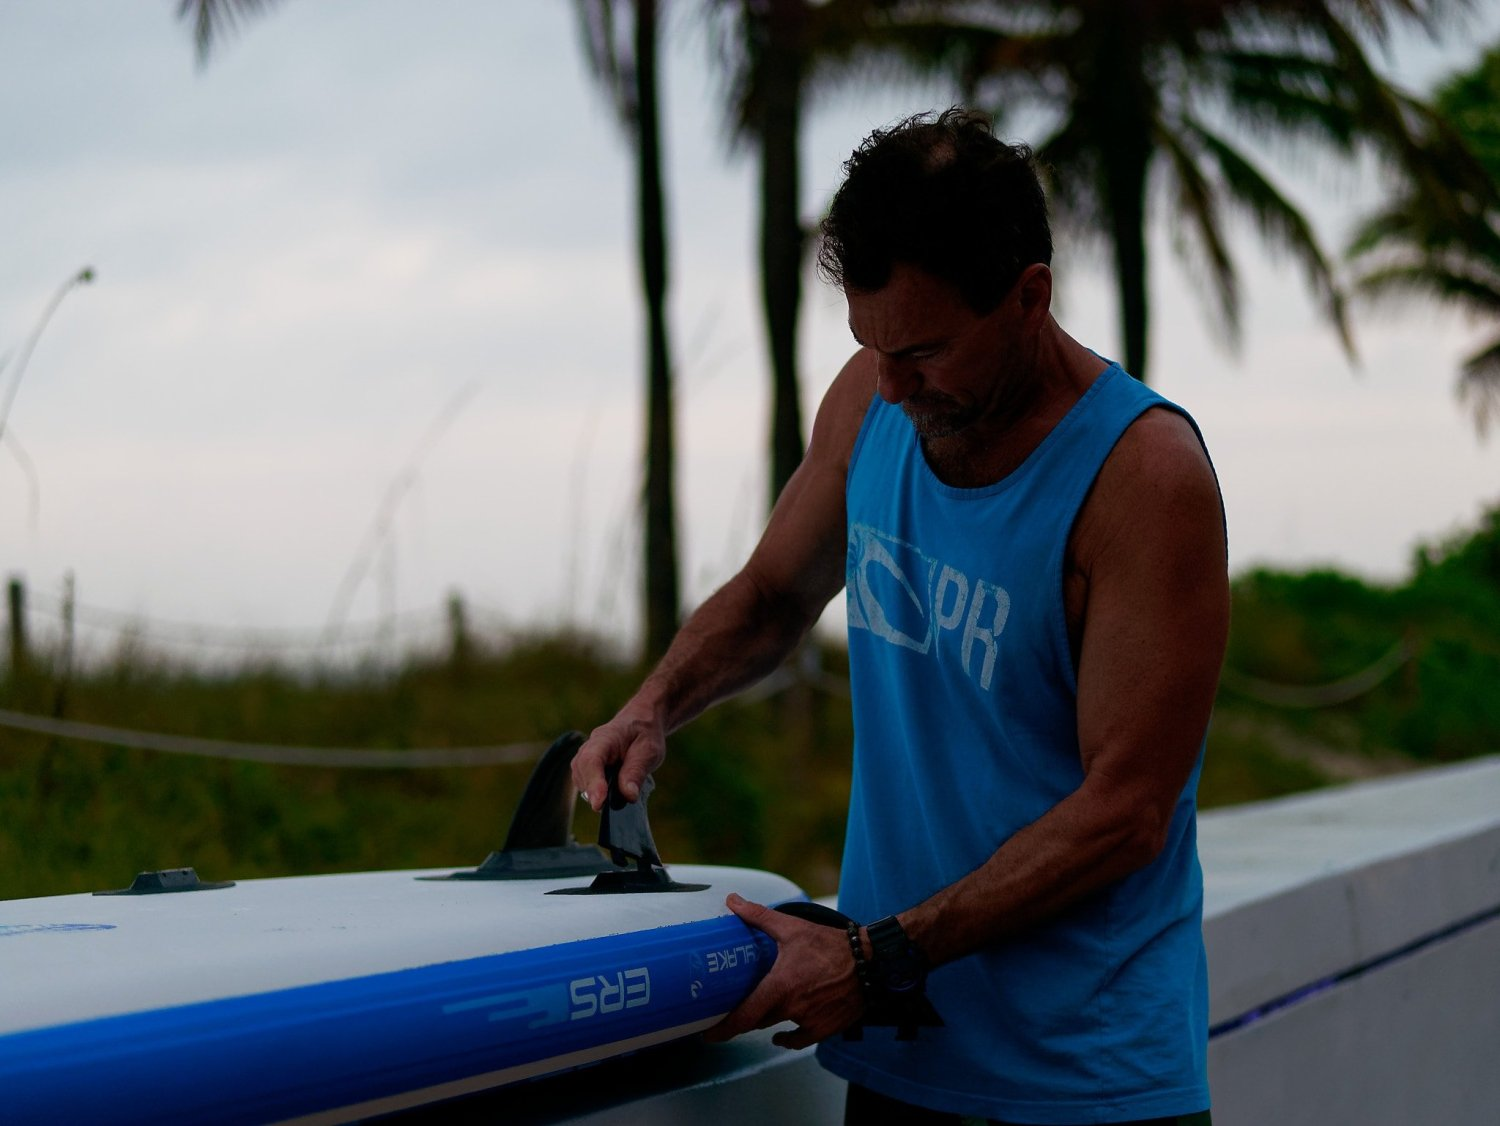 man fitting fins to a paddle board